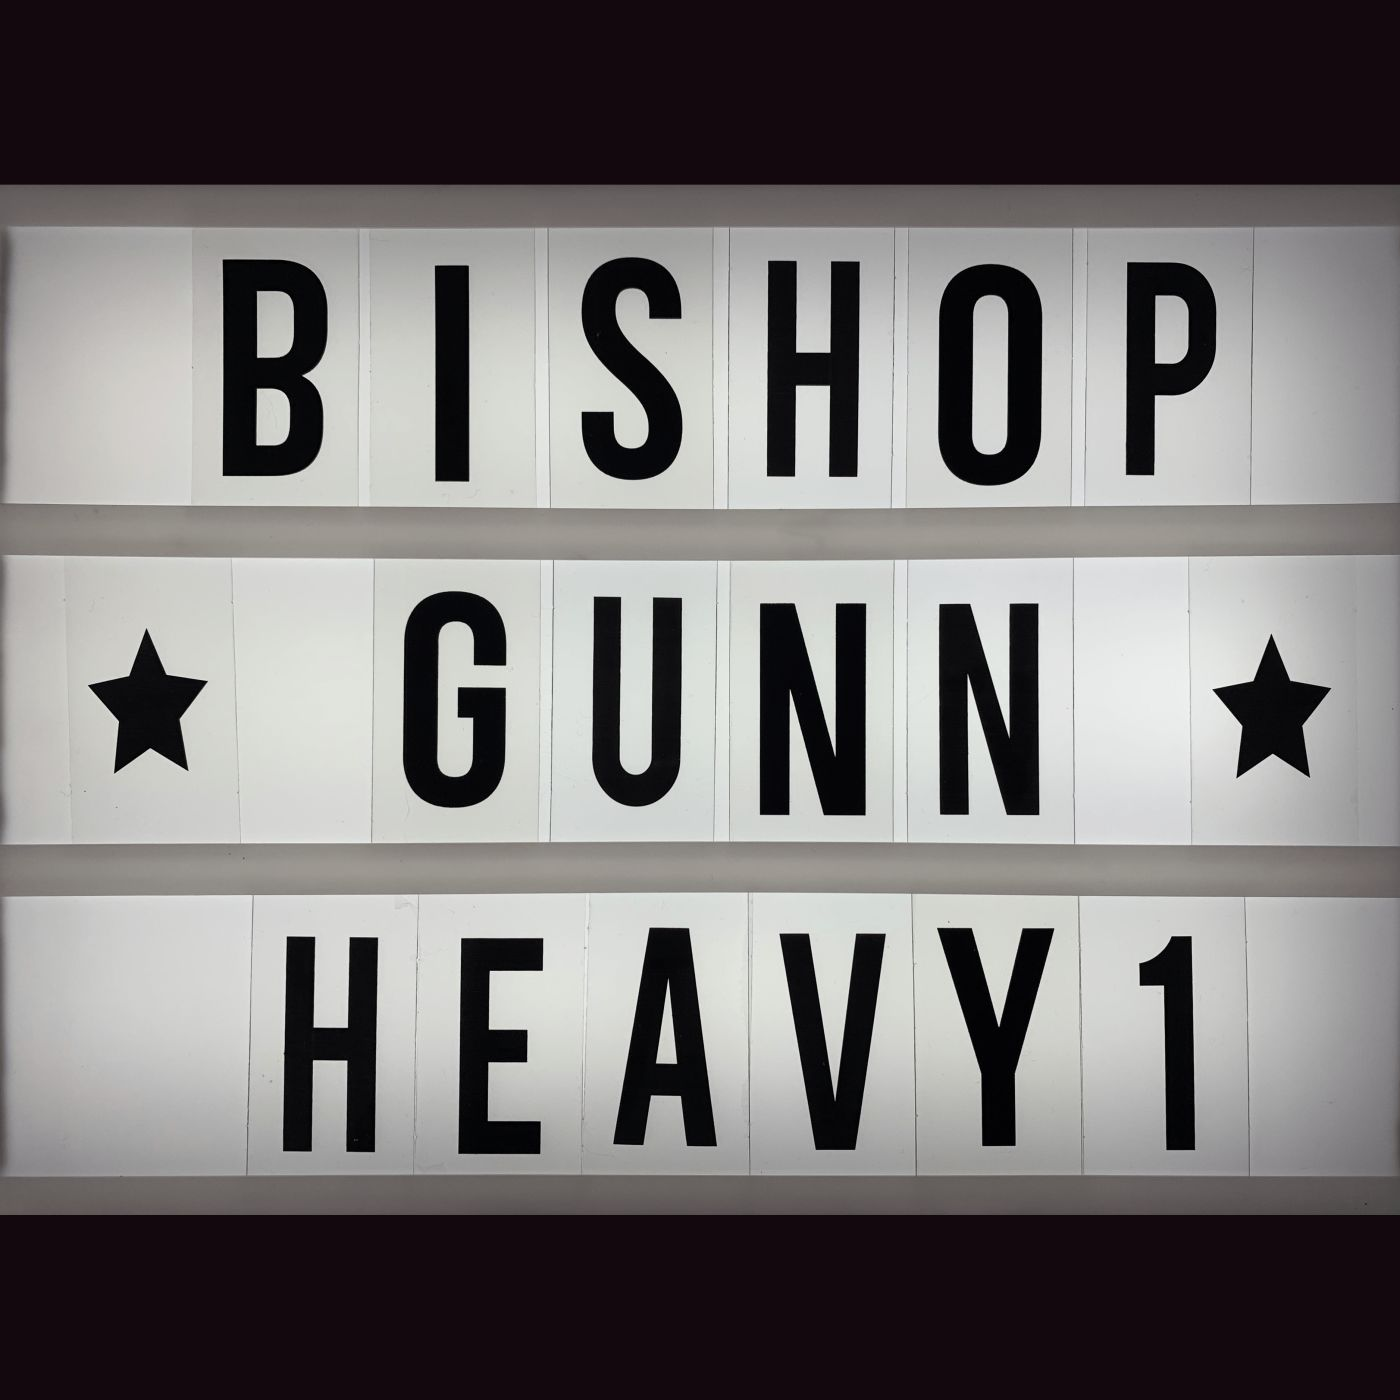 Bishop Gunn : Heavy1 Session